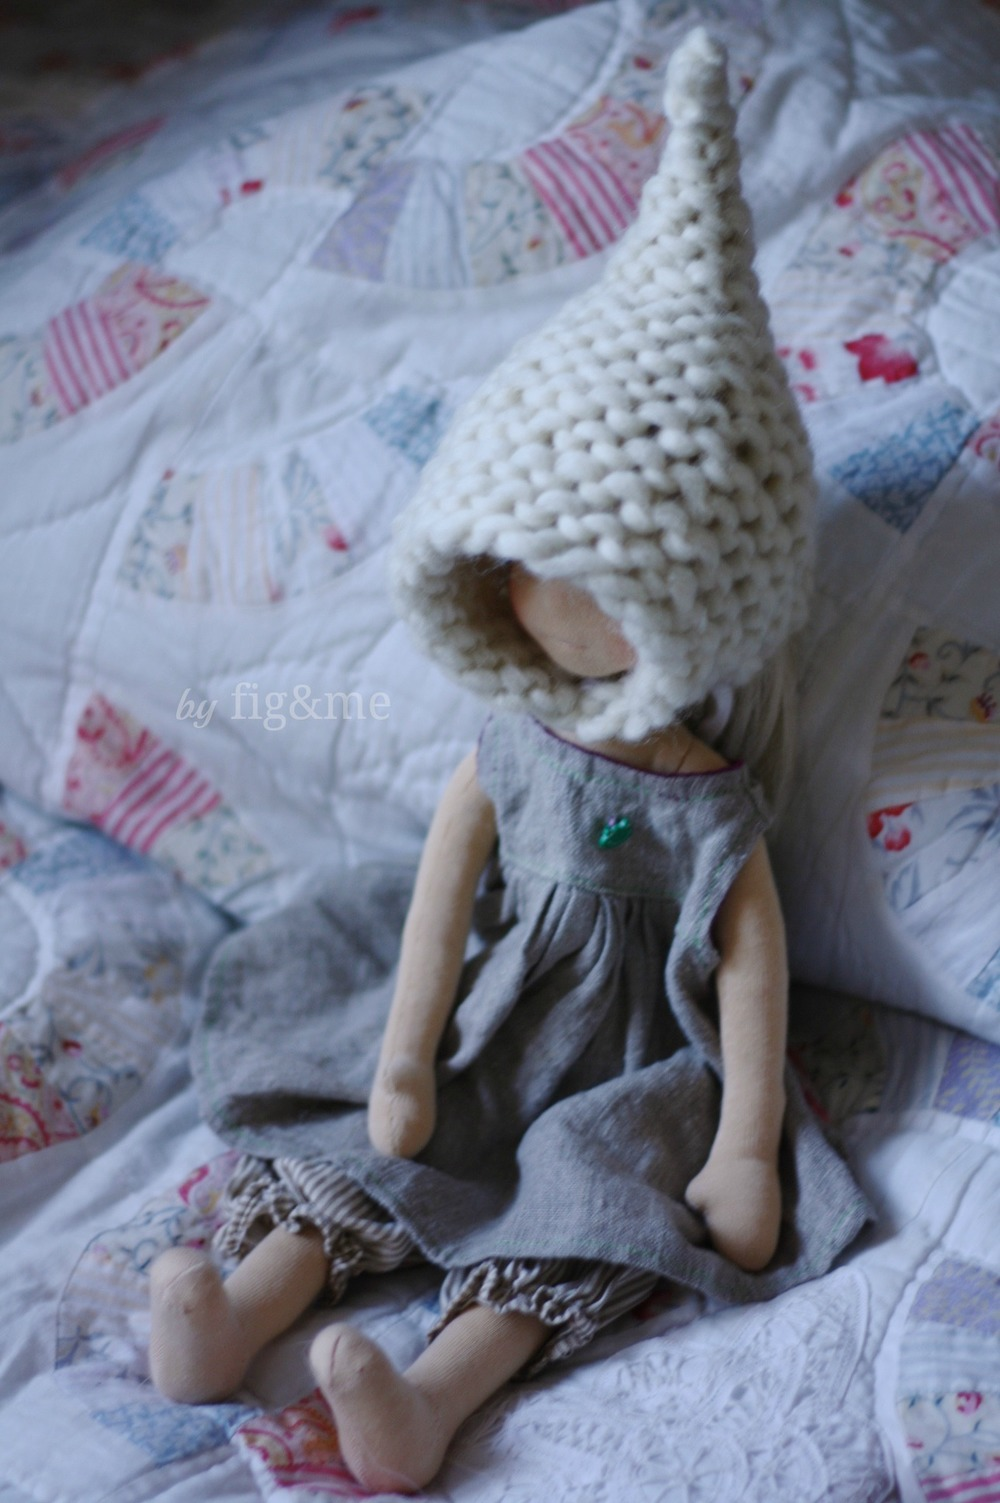 Cygnet and her hand knit hat, by Fig and me.